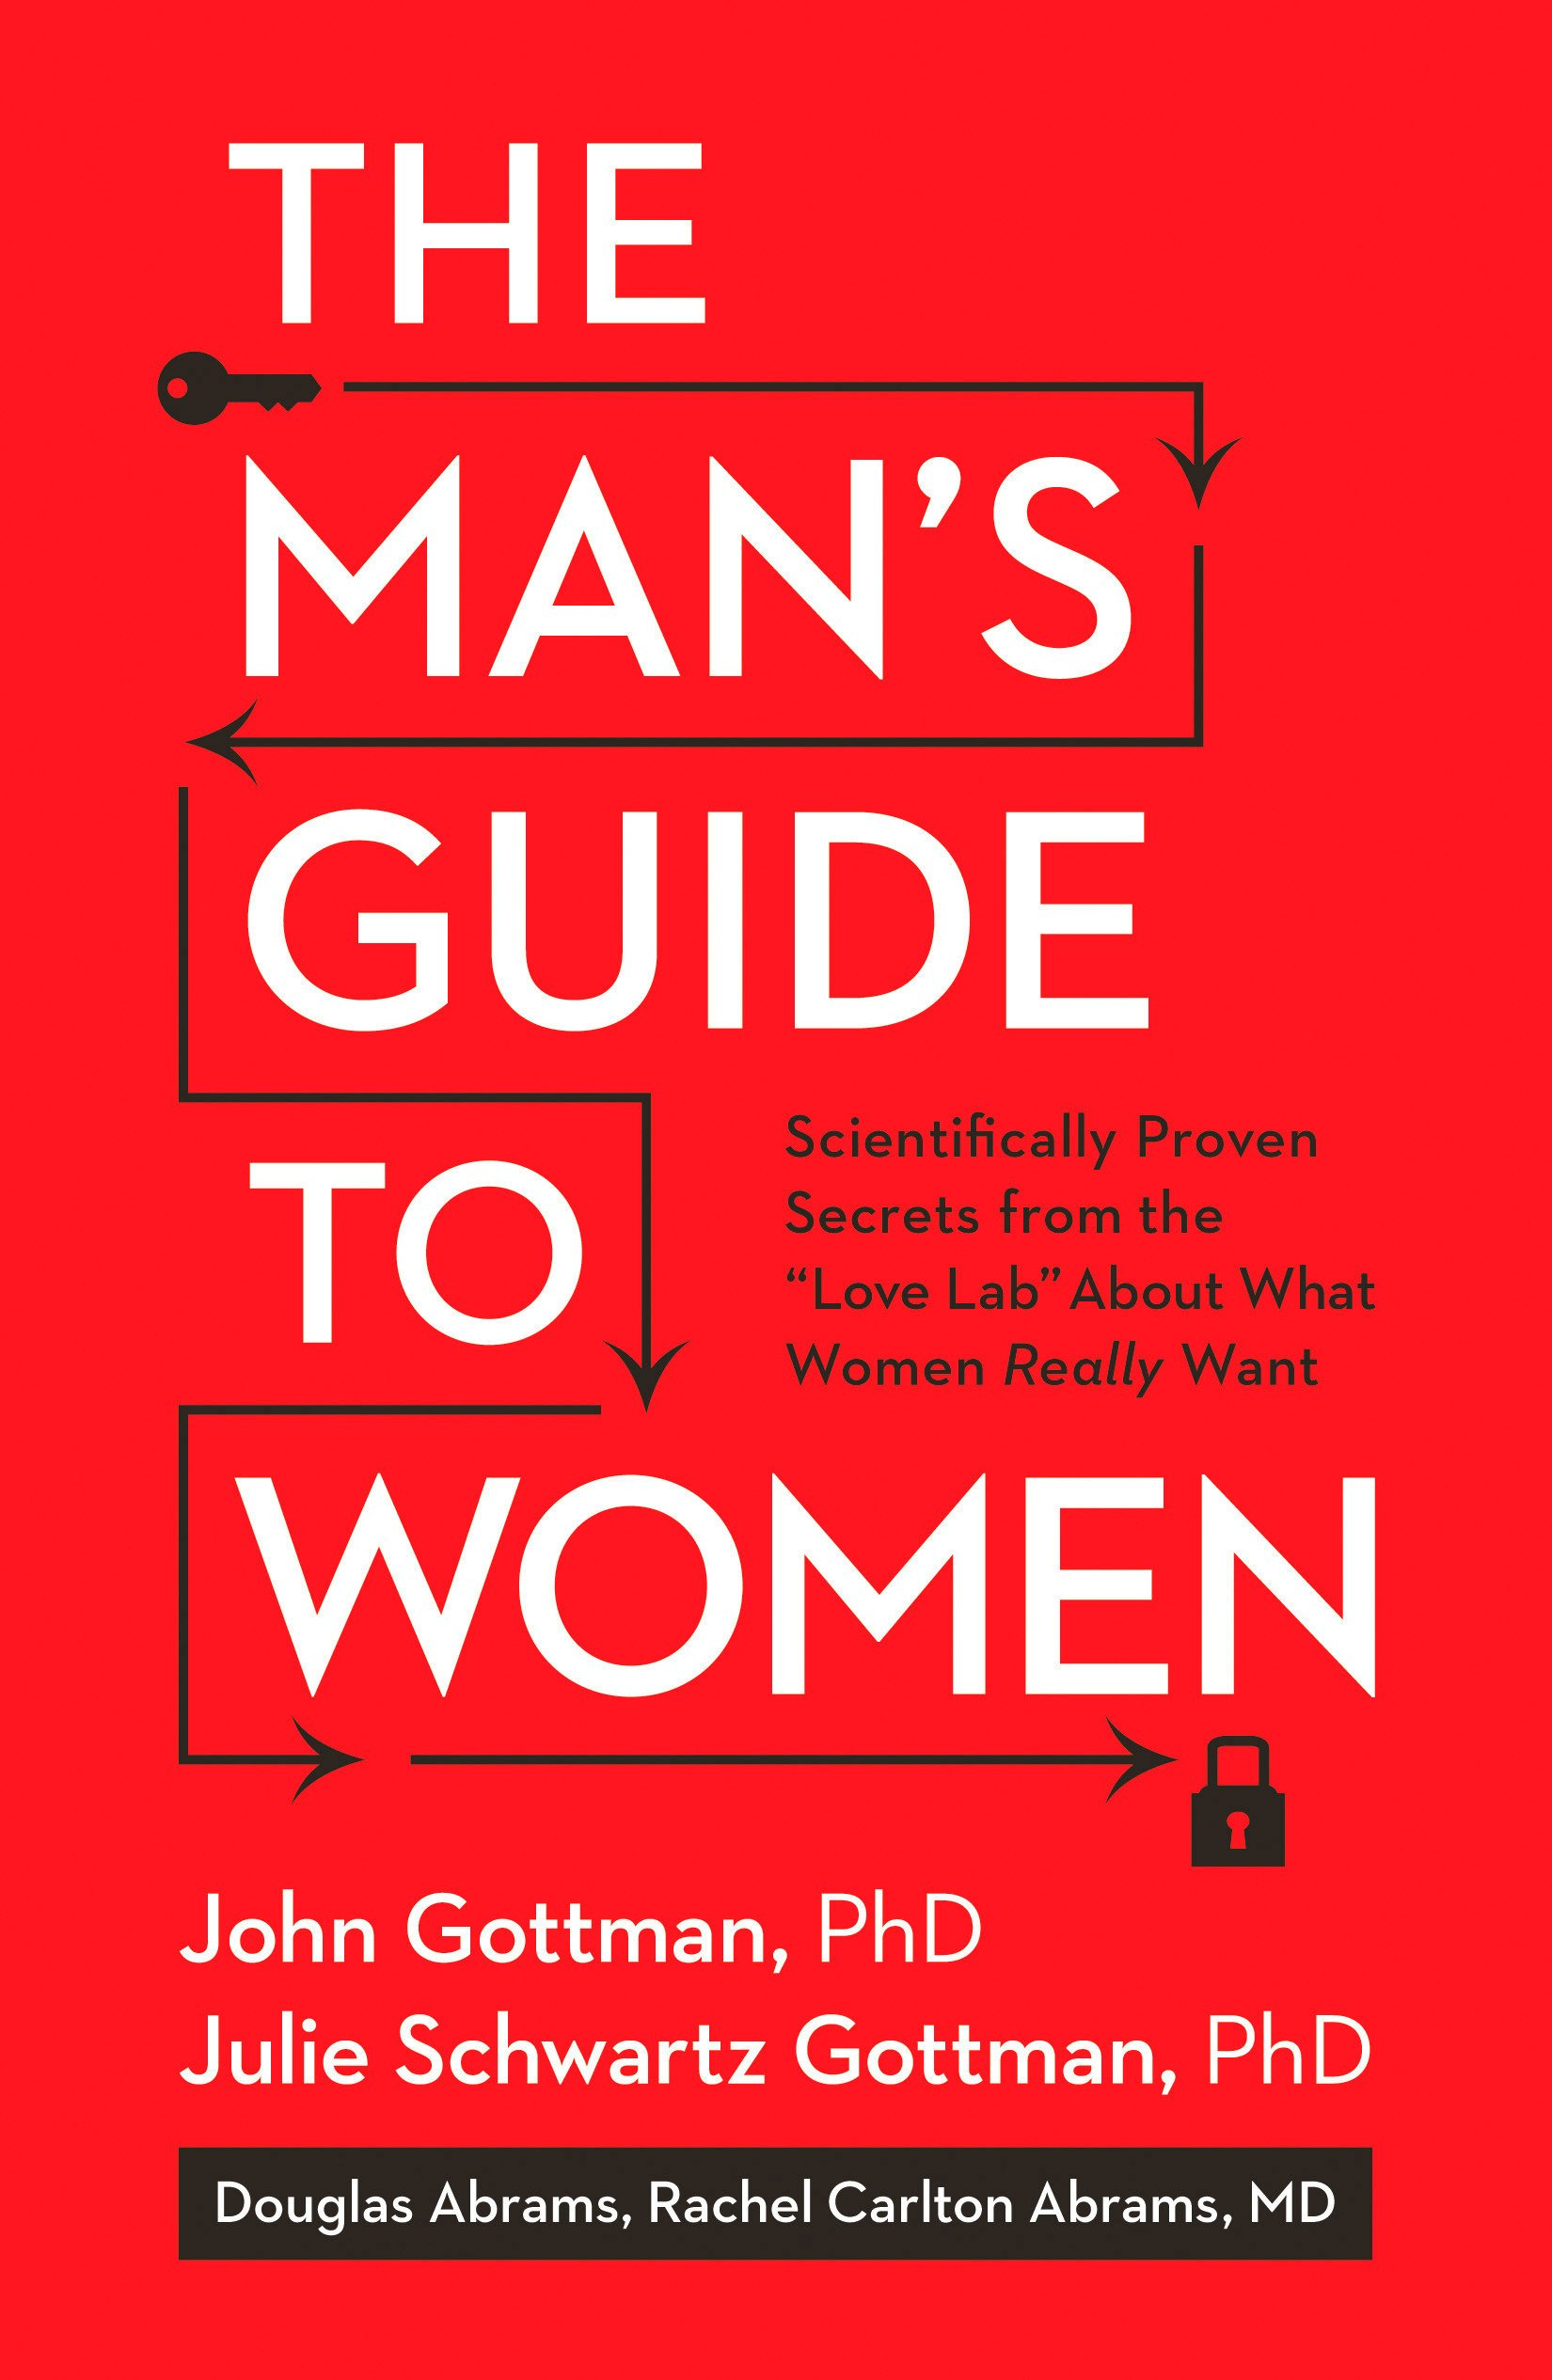 The Man's Guide to Women: Scientifically Proven Secrets from the Love Lab About What Women Really Want by RODALE PRESS